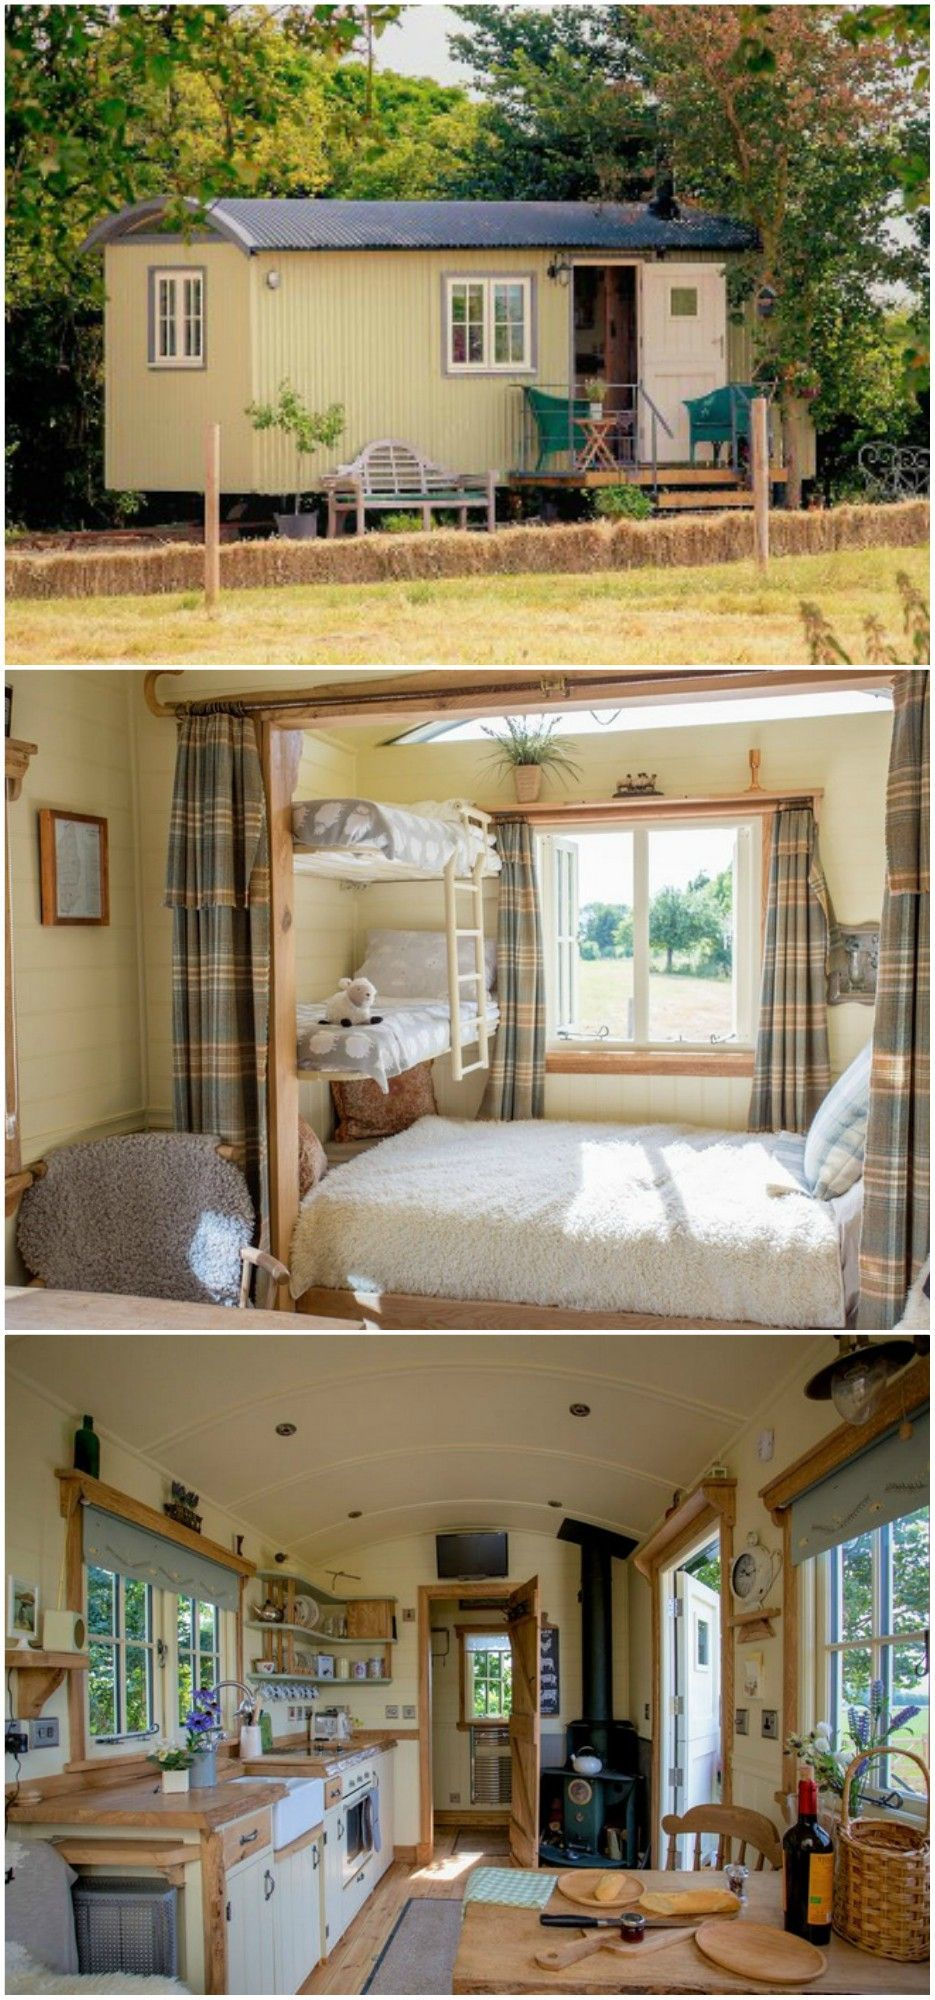 15 dreamy shepherd's huts you can rent #tinyhouse